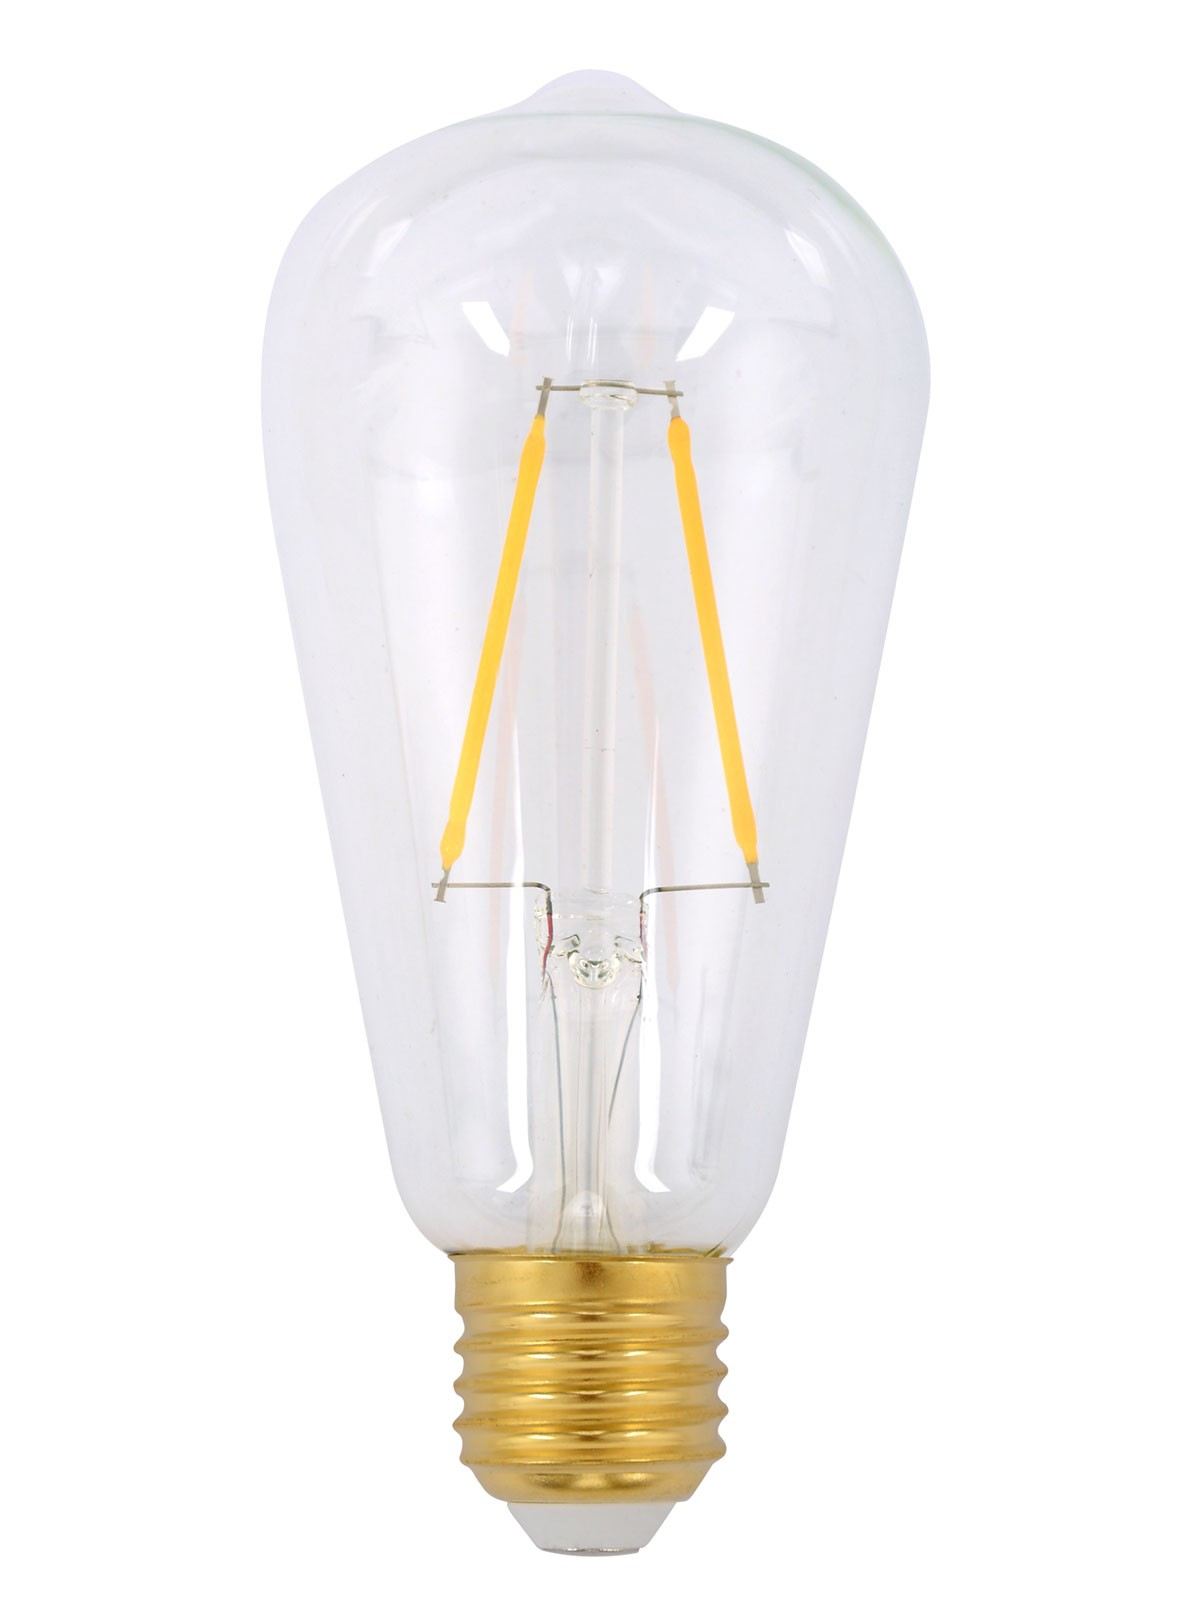 White Warm Lamps Bulb Heritage 5 Products Watt Es Led 2 Pilot Ge oWeCBrxd